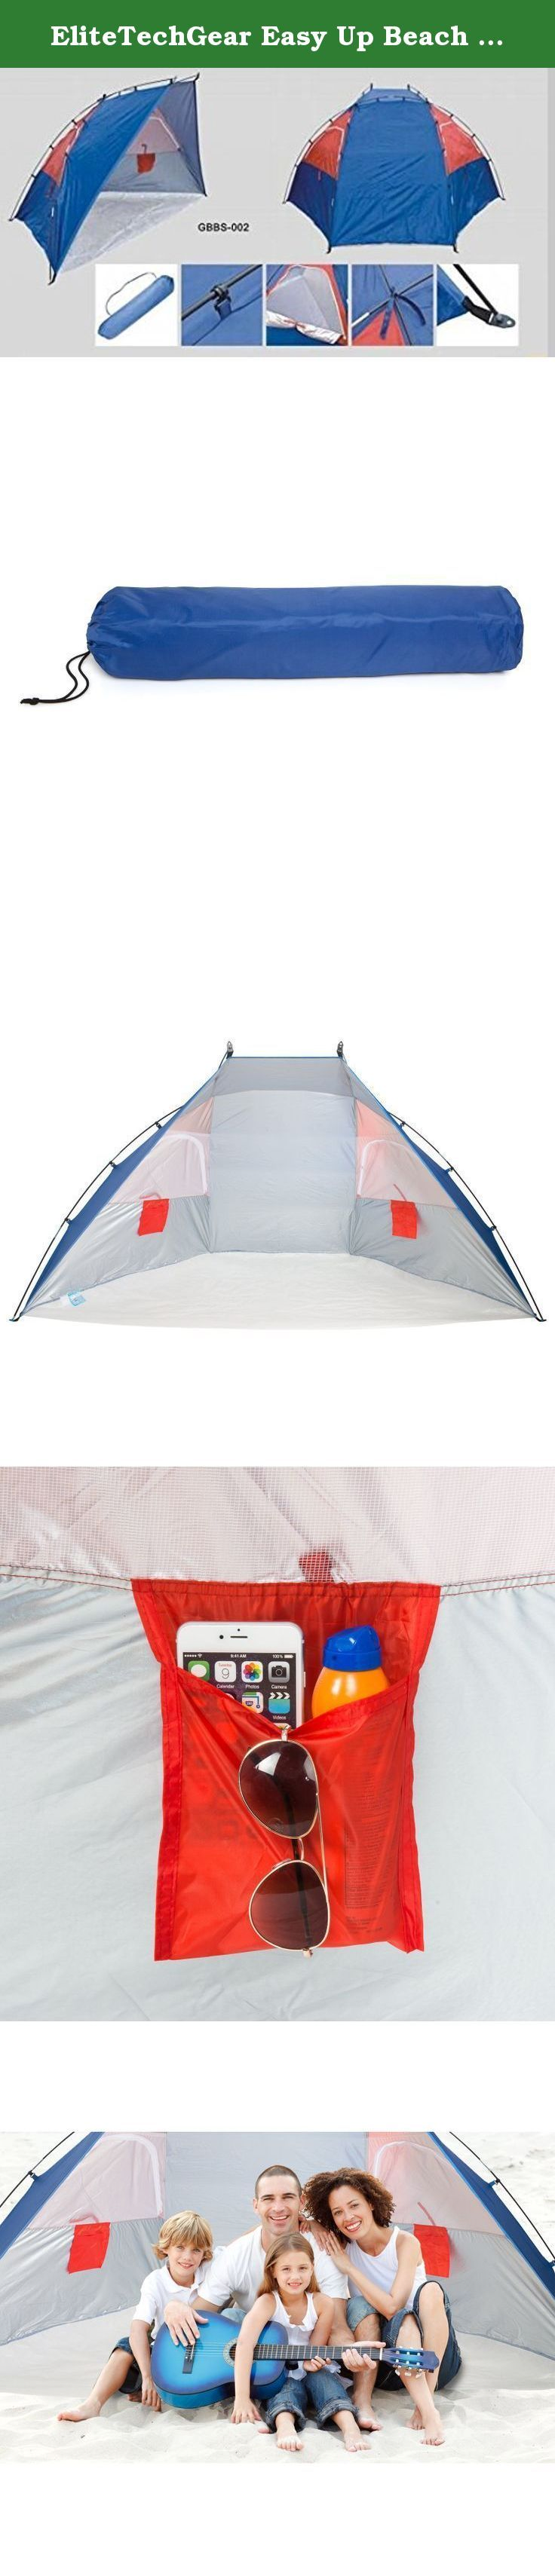 EliteTechGear Easy Up Beach Sun Shade Tent/Canopy. Excellent Cabana/Shelter for Kids & Family at the Beach, Sports Events, Concerts, Picnics, Hiking, Camping, & Outdoors.!. Love the sun but need to have a place to take a break from the heat or the rain? Your EliteTechGear¨ Sun Shade Tent is a must have accessory to take with you to the beach, parks, sporting events, hiking, camping, fishing and more. Perfect if you have kids for time out of the sun or for watching sports events from the...